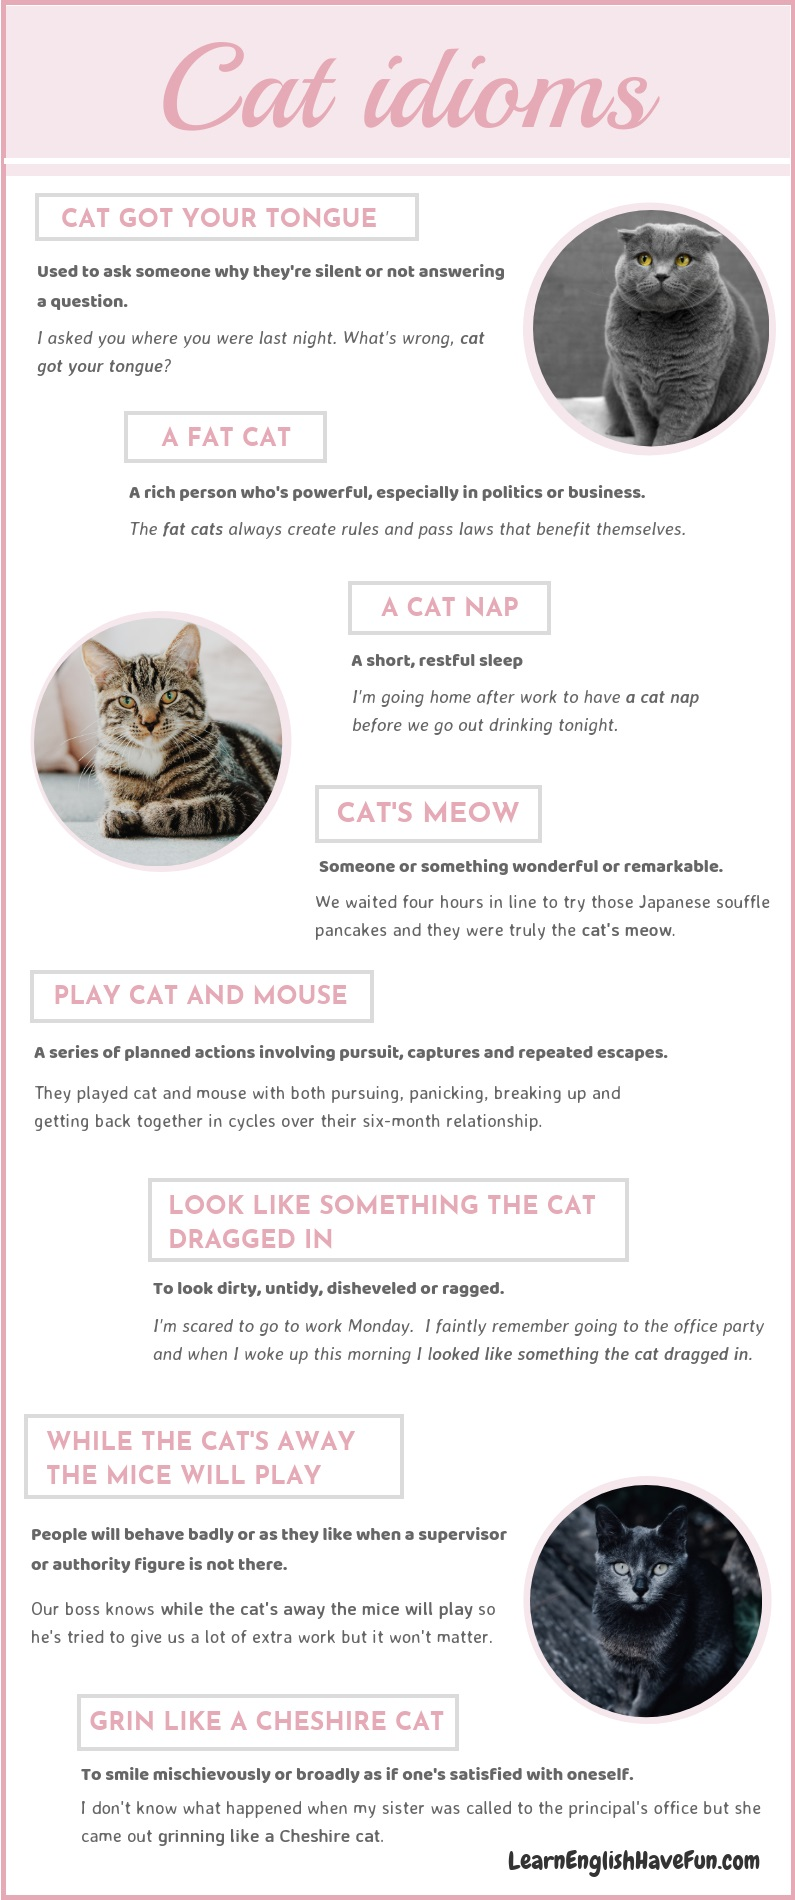 An info-graphic with 3 photos of cats and the 8 idioms listed on this page with sentence examples.